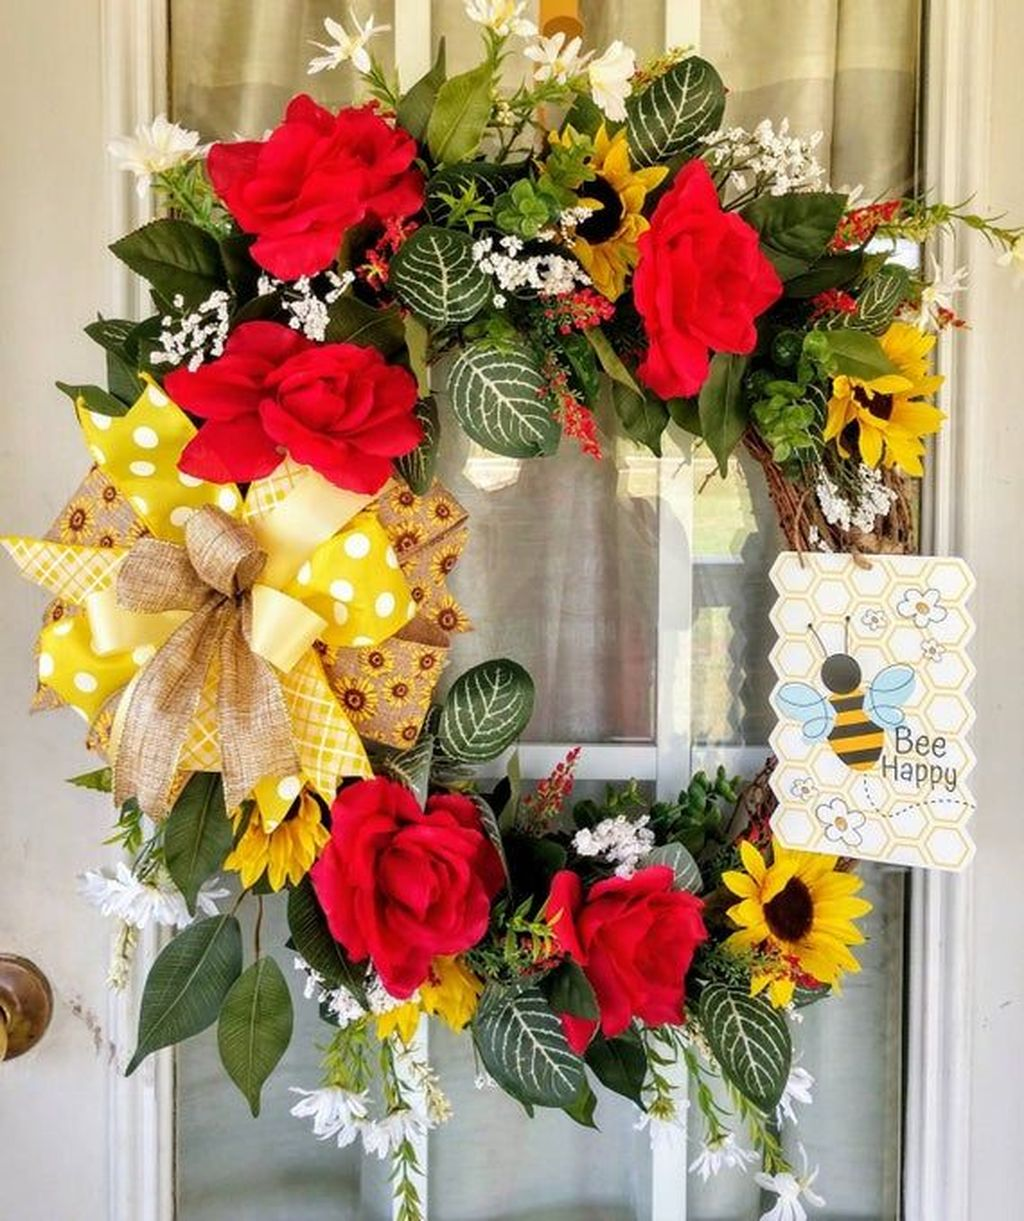 Fabulous Valentine Wreath Design Ideas FOr Your Front Door Decor 27